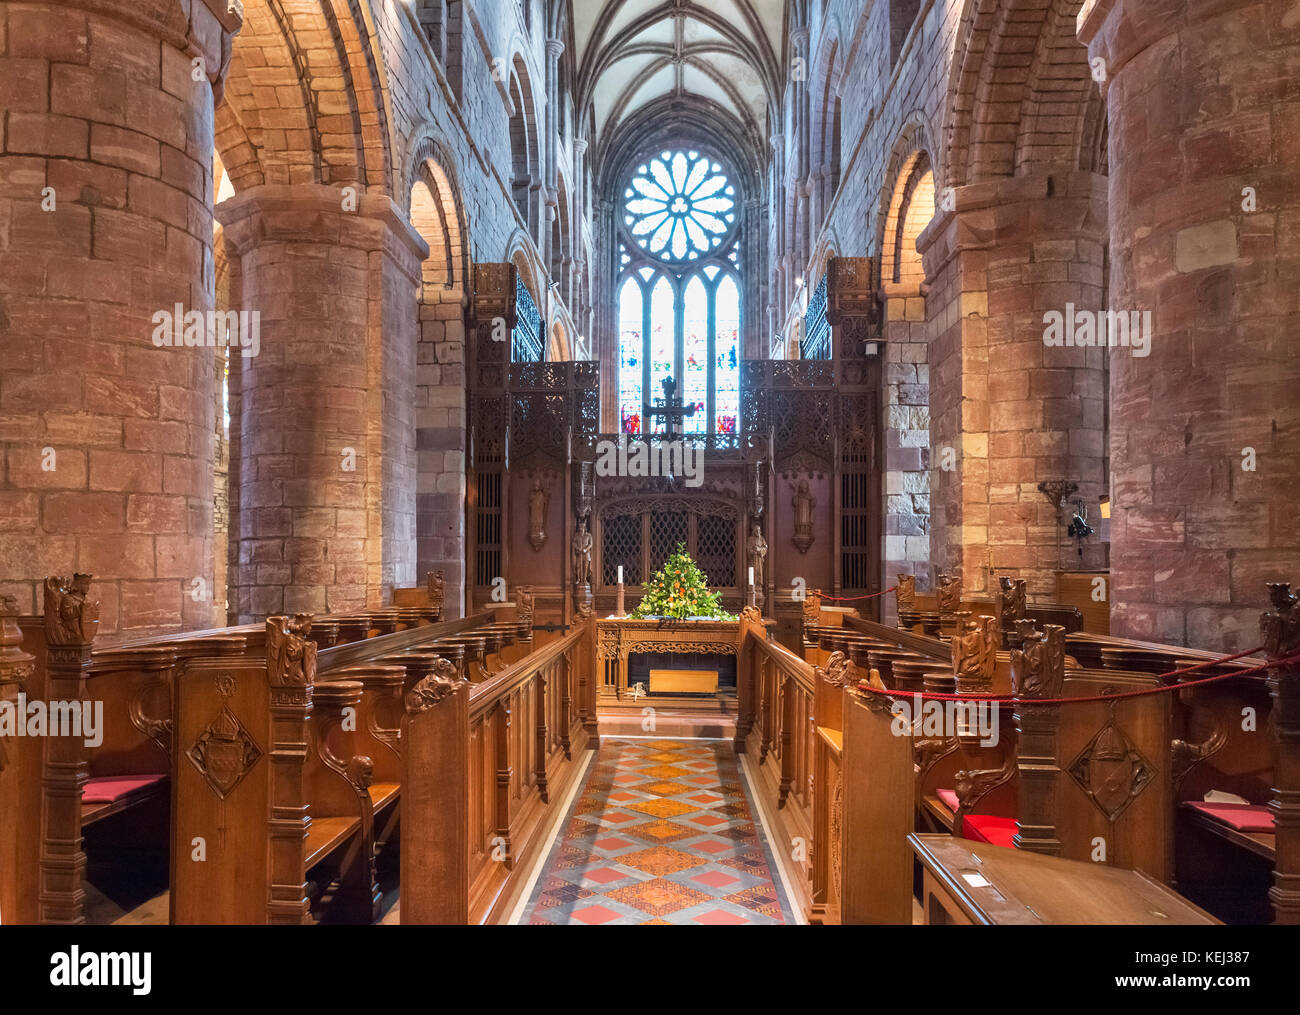 Interior of St Magnus Cathedral, Kirkwall, Mainland, Orkney, Scotland, UK - Stock Image